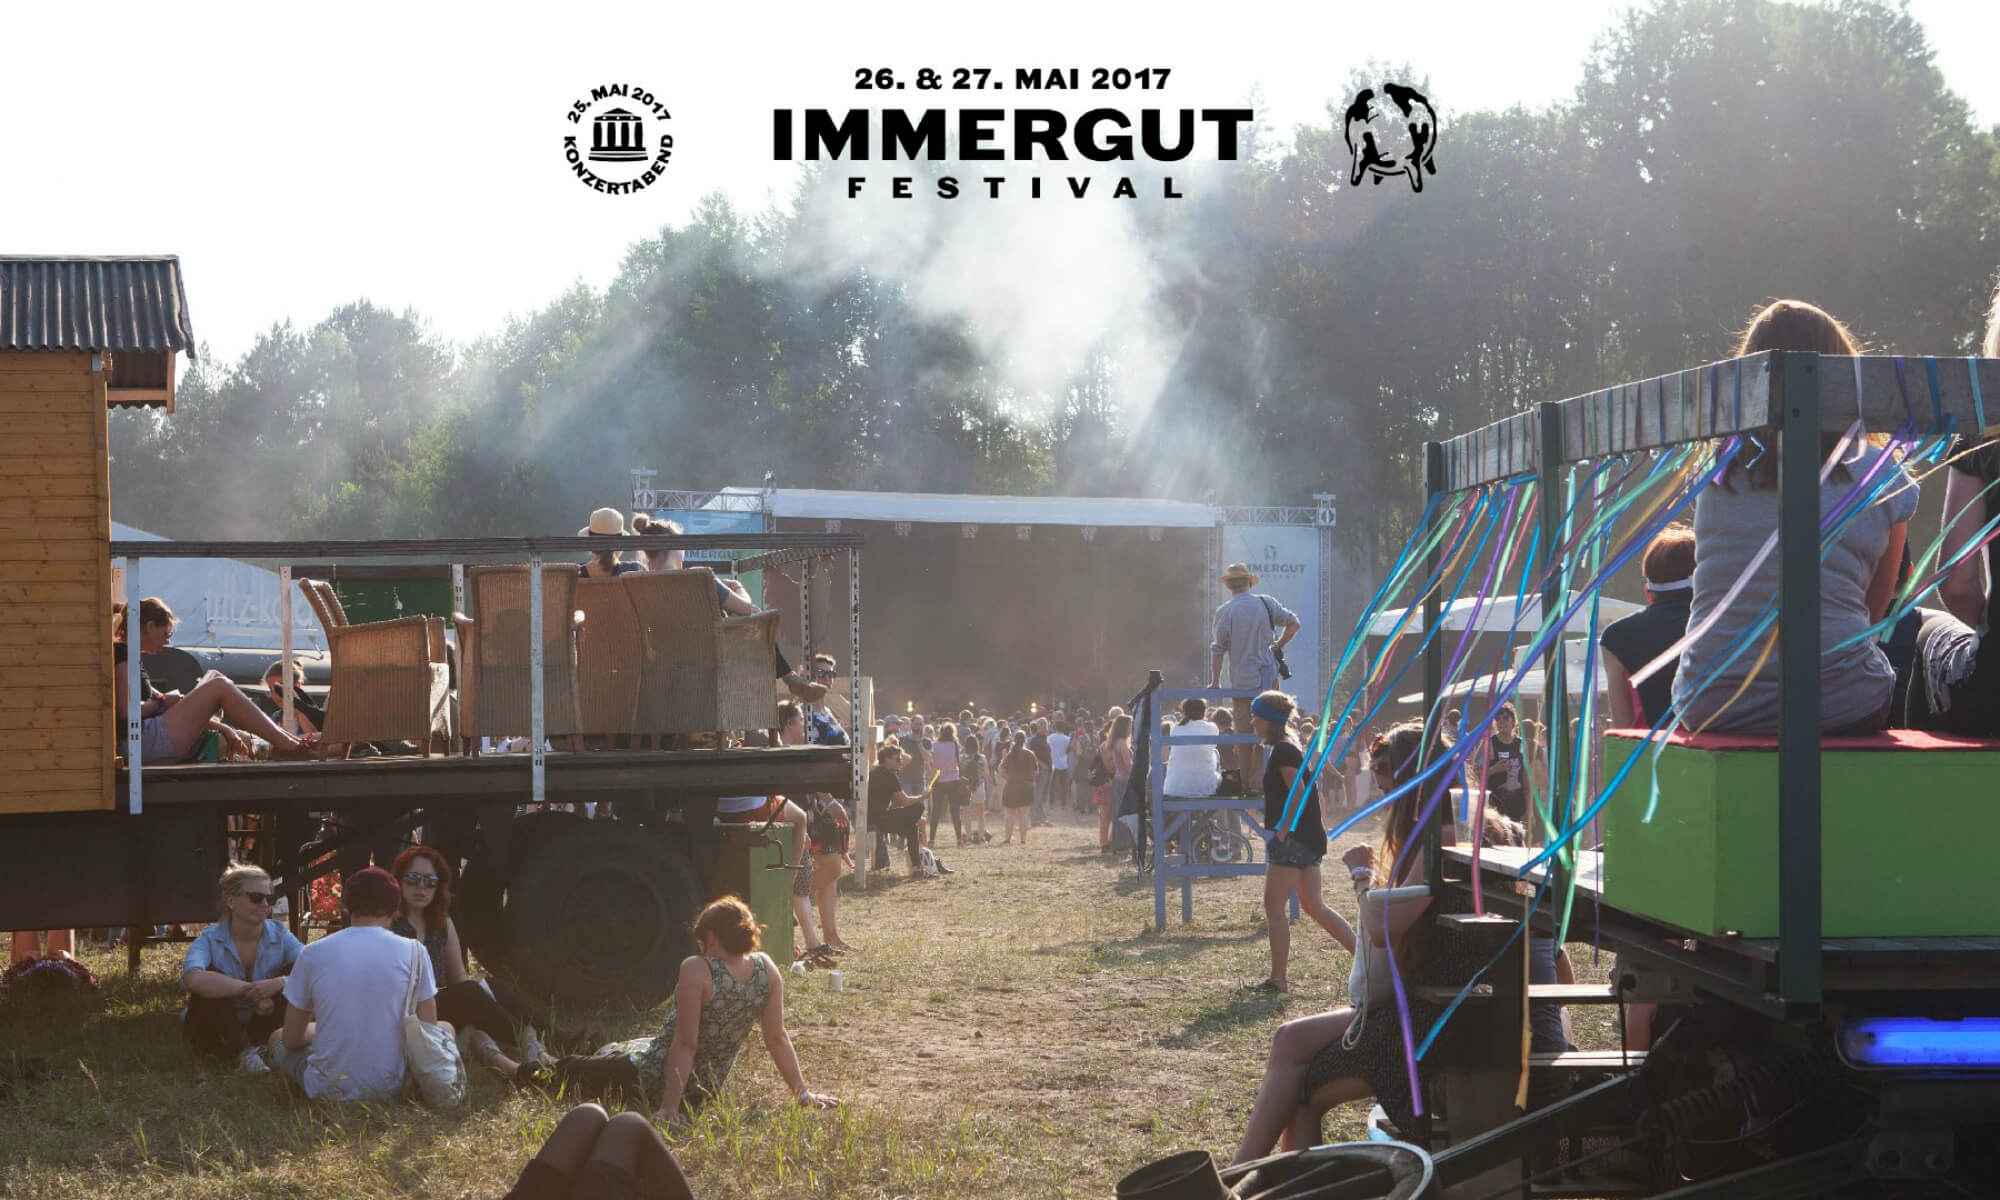 via Immergut Festival